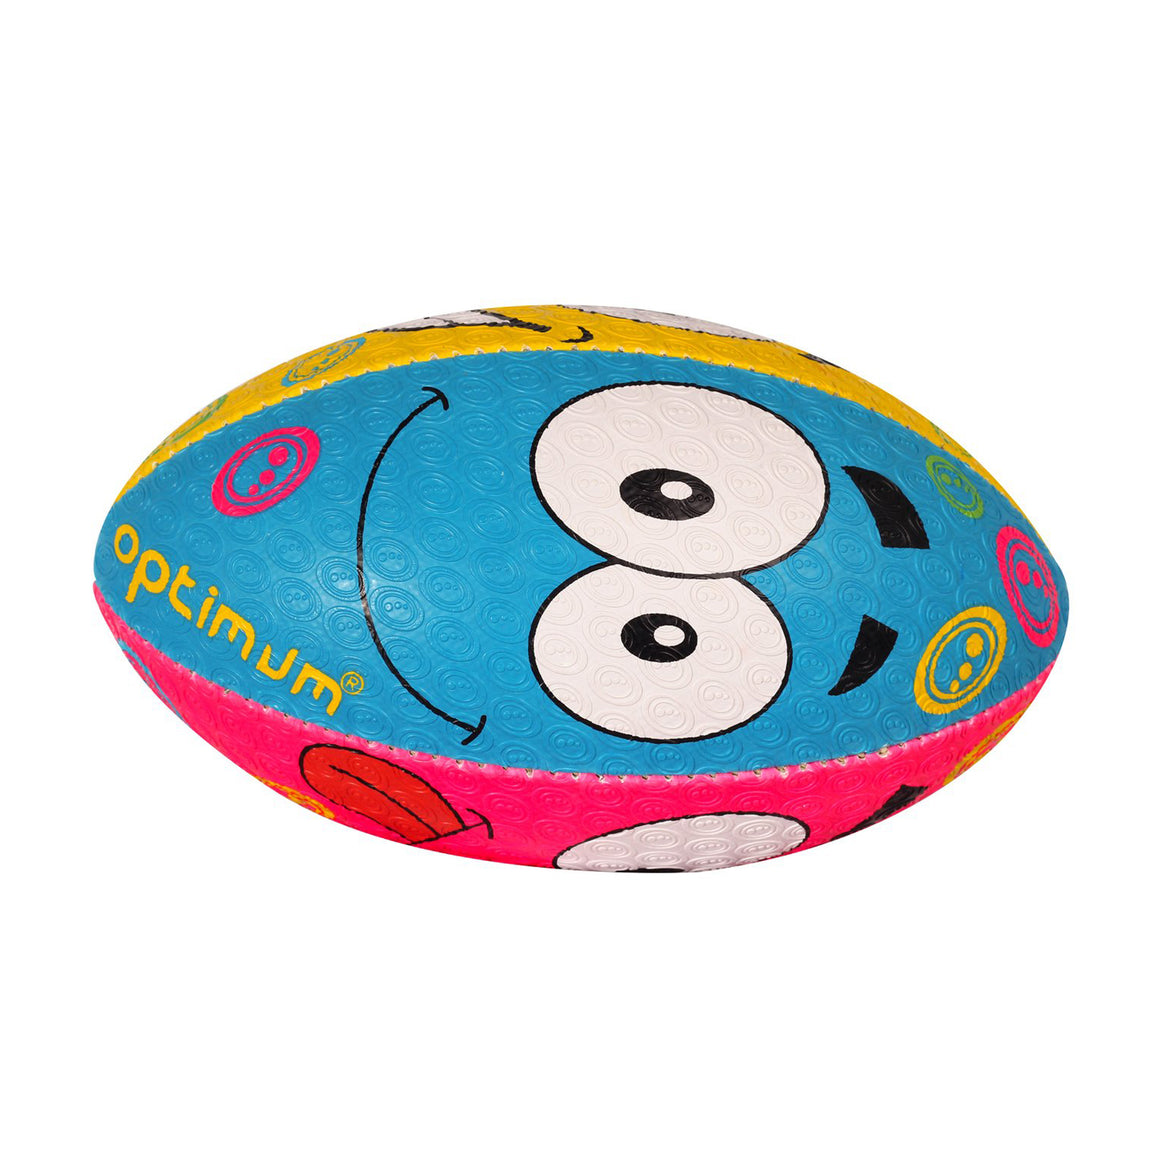 Emoji Rugby Ball